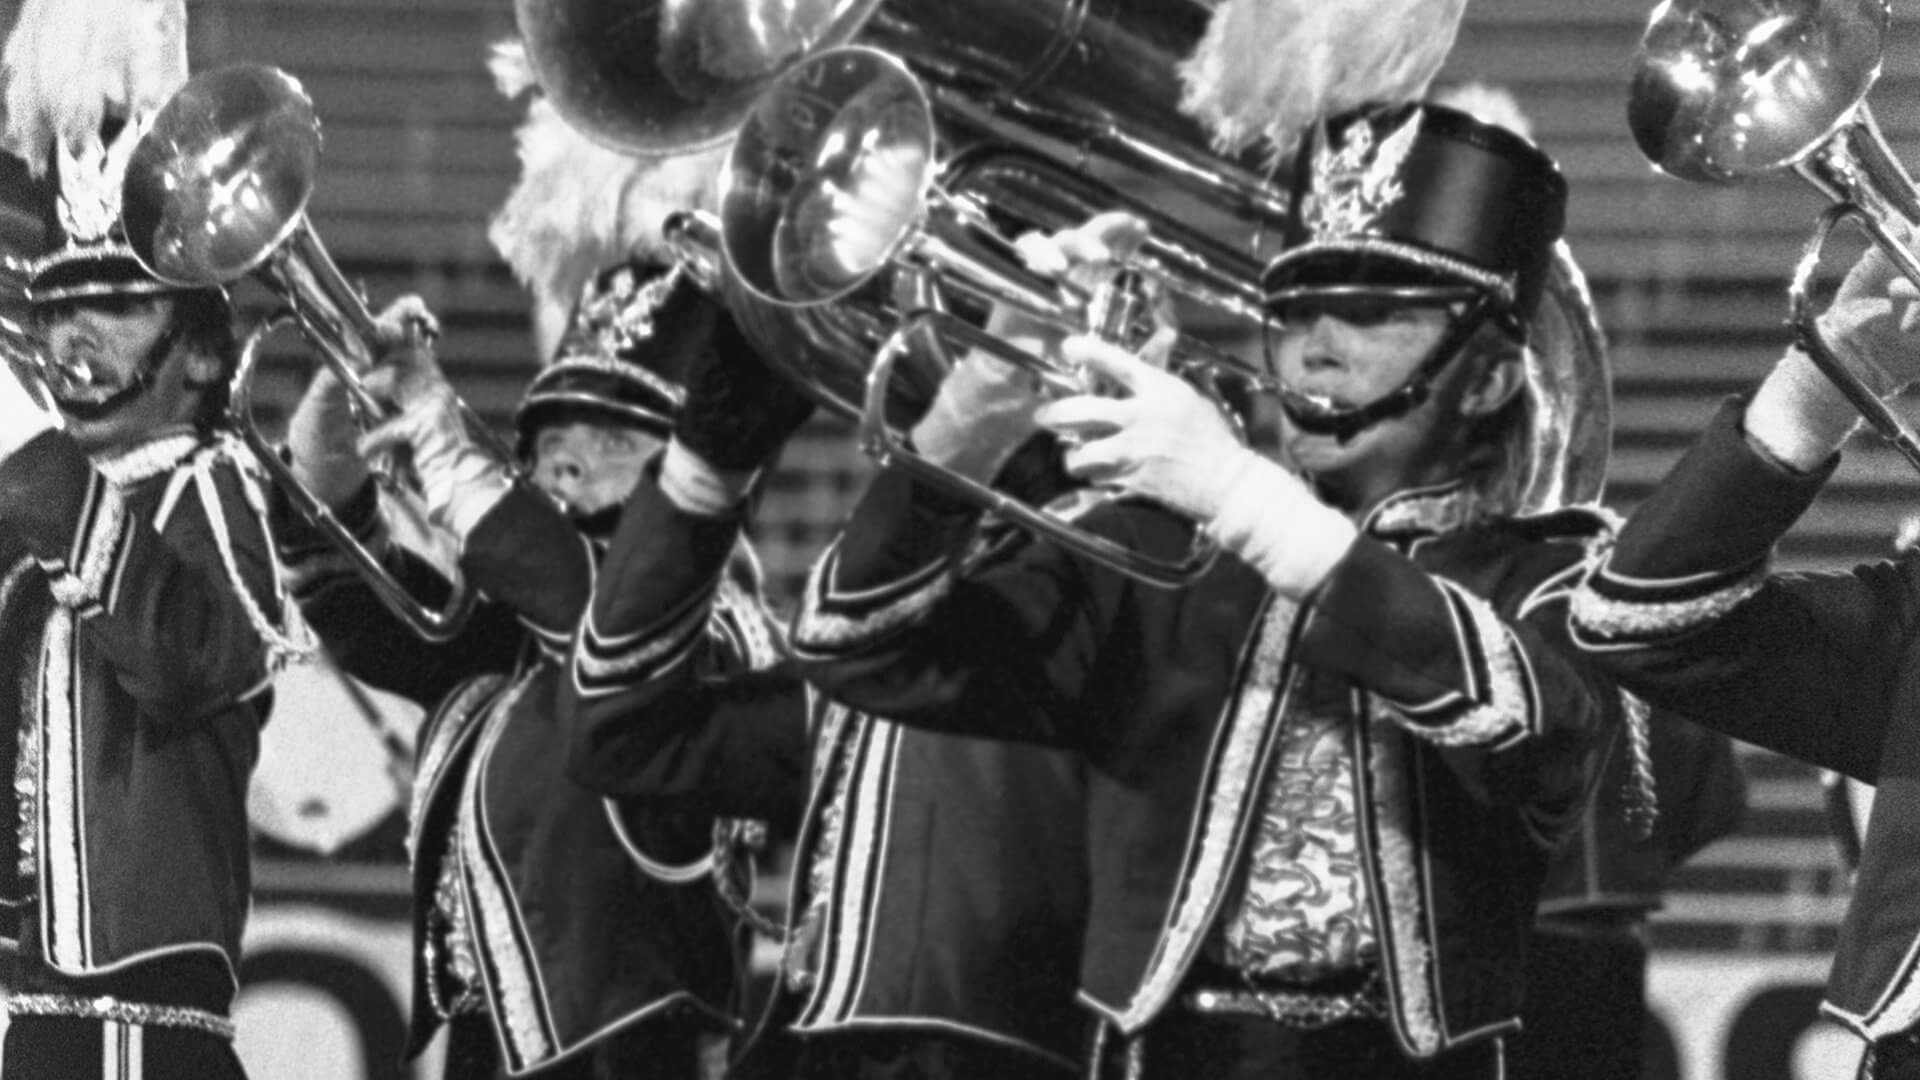 Kanstul?s innovative brass instruments set the drum corps standard for decades